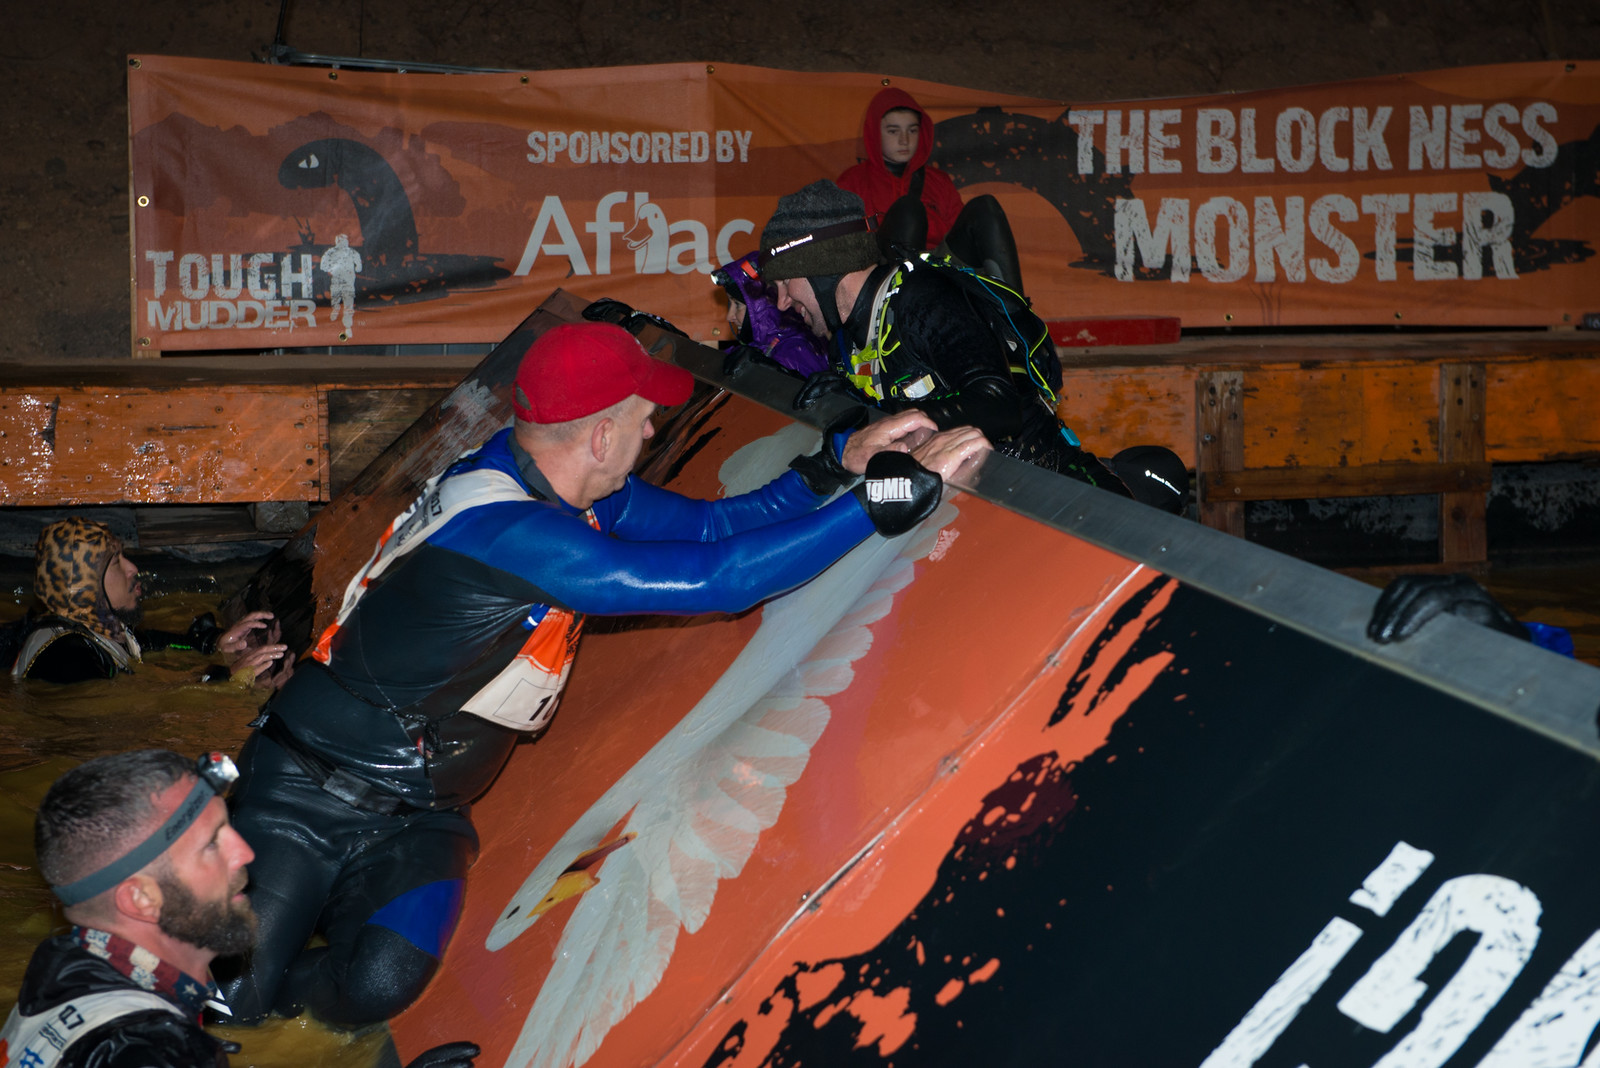 WTM 2017 Obstacles from midnight until the end-0104-X3.jpg